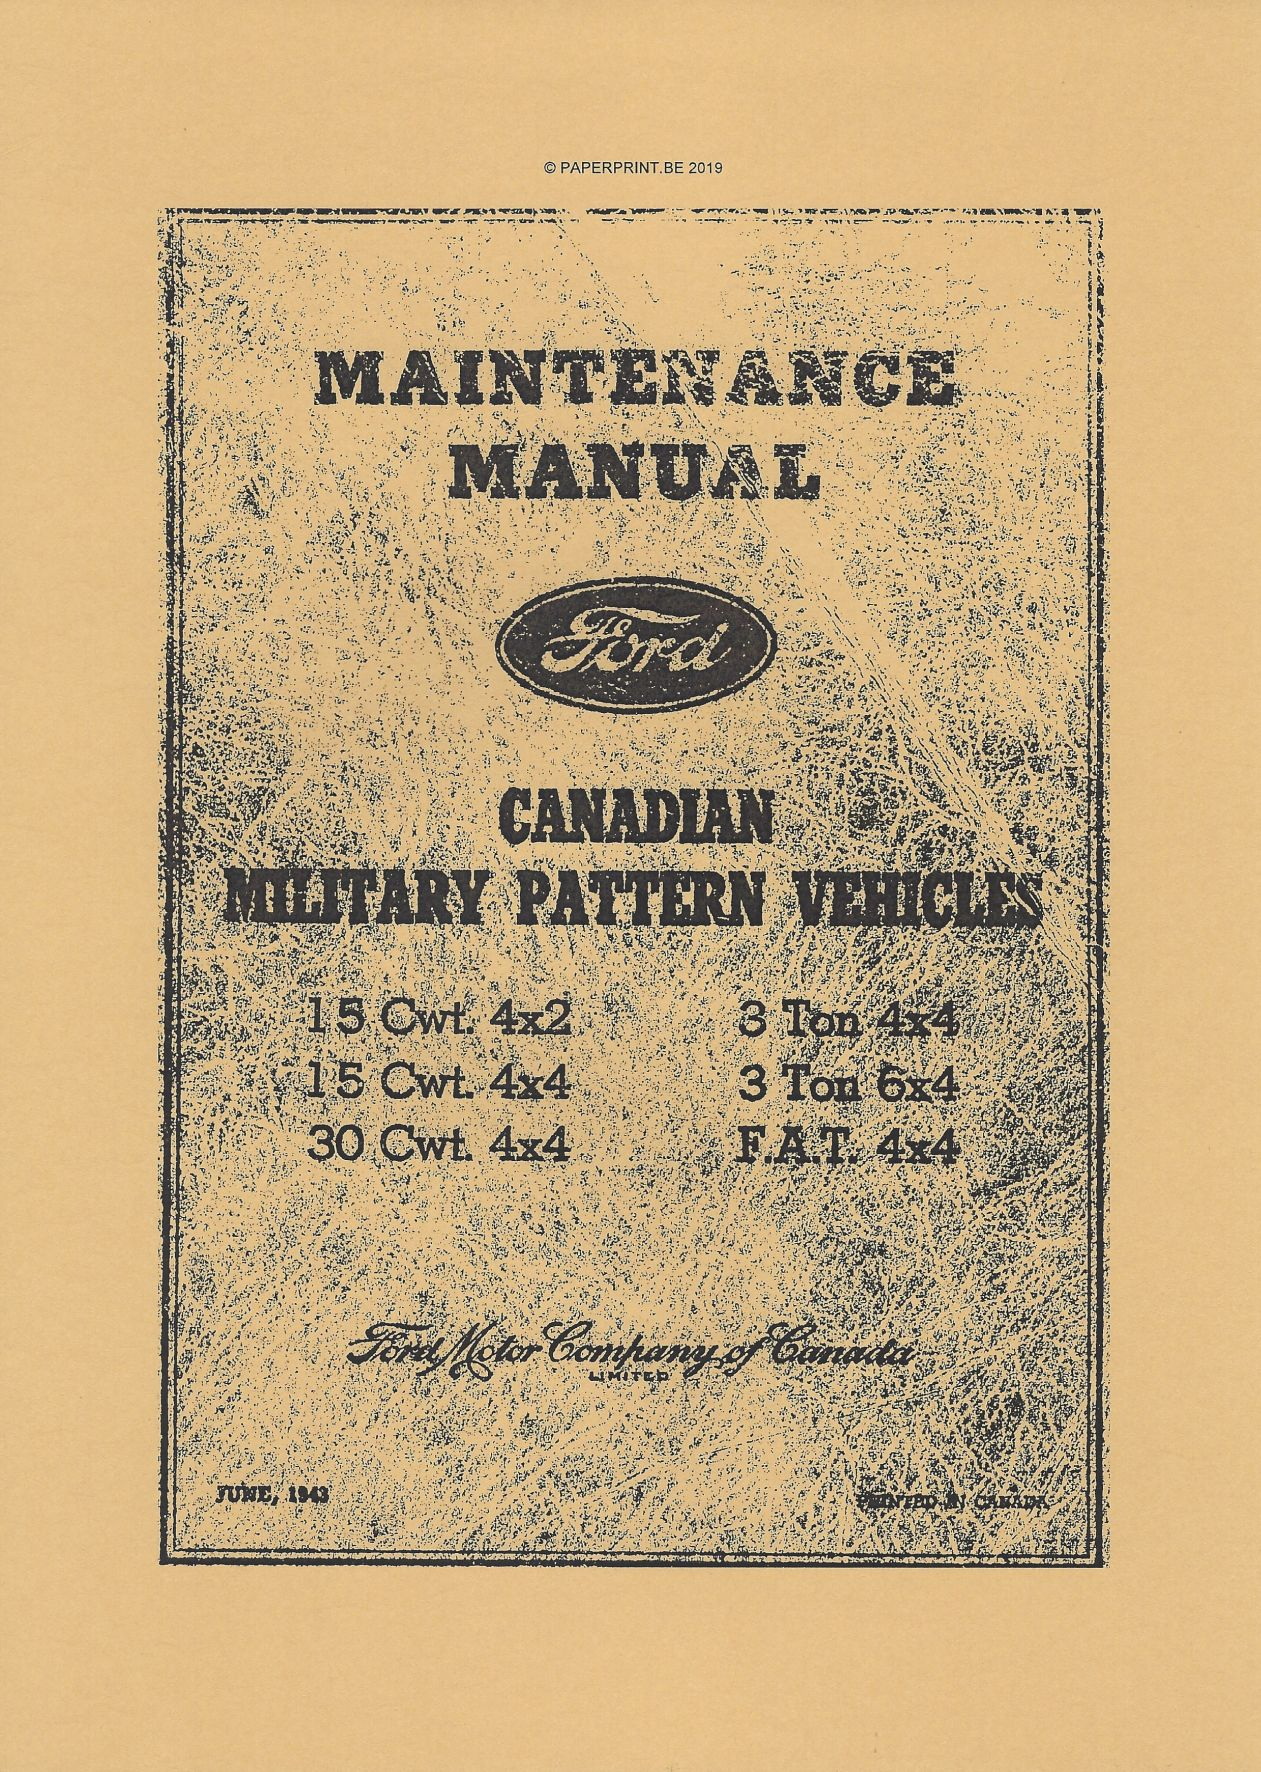 MB-F1 FORD CANADIAN MILITARY PATTERN MAINTENANCE MANUAL